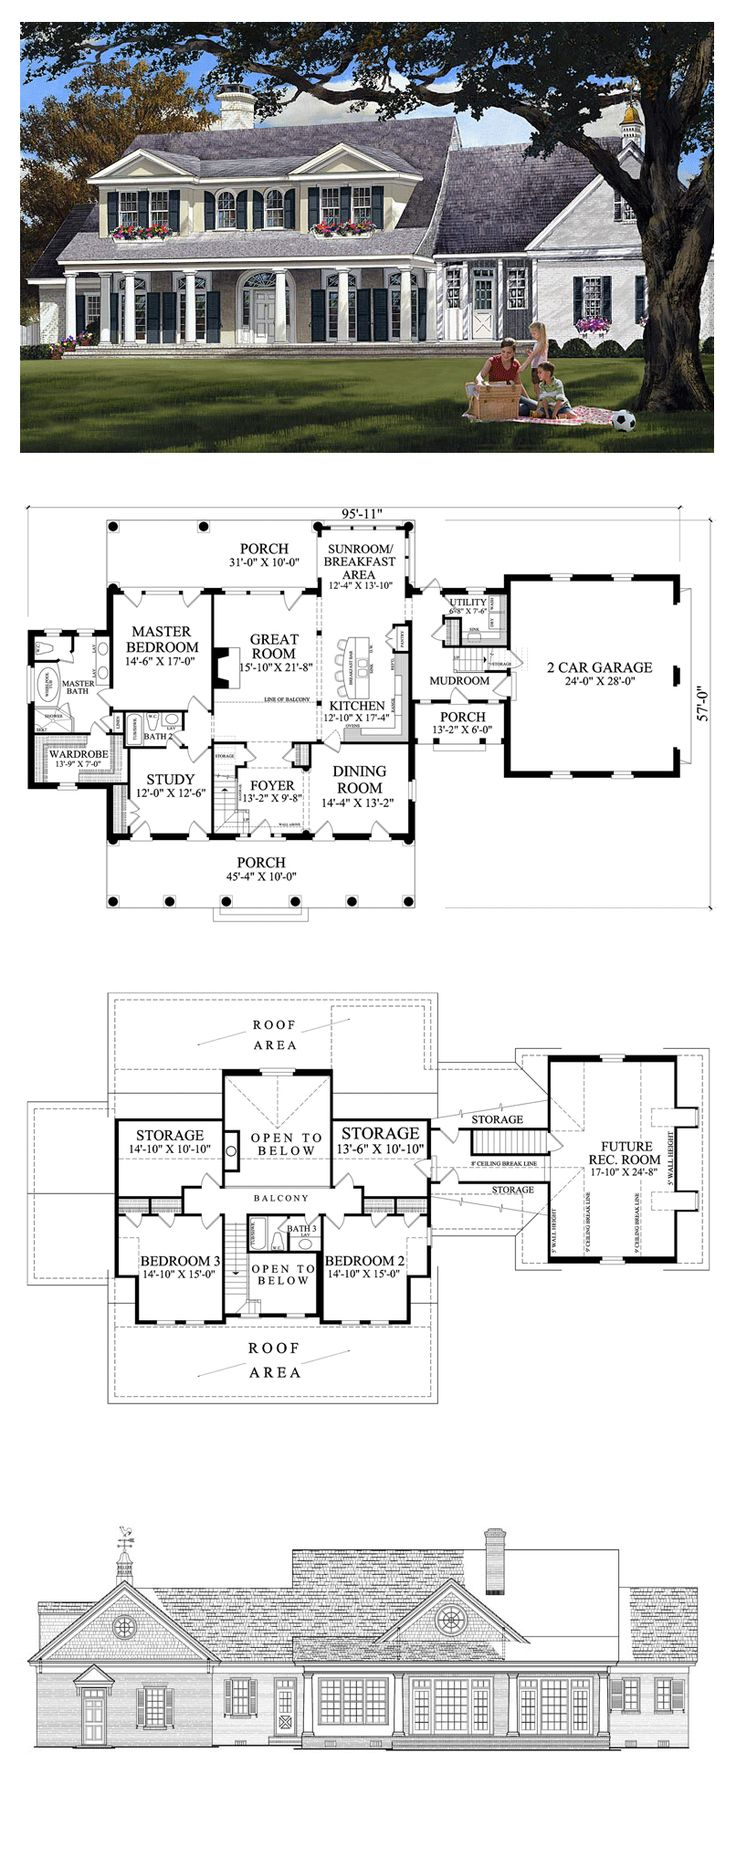 Plantation House Plan 86148 | Total Living Area: 2994 sq. ft., 4 bedrooms  3 bathrooms. #houseplan #plantationstyle